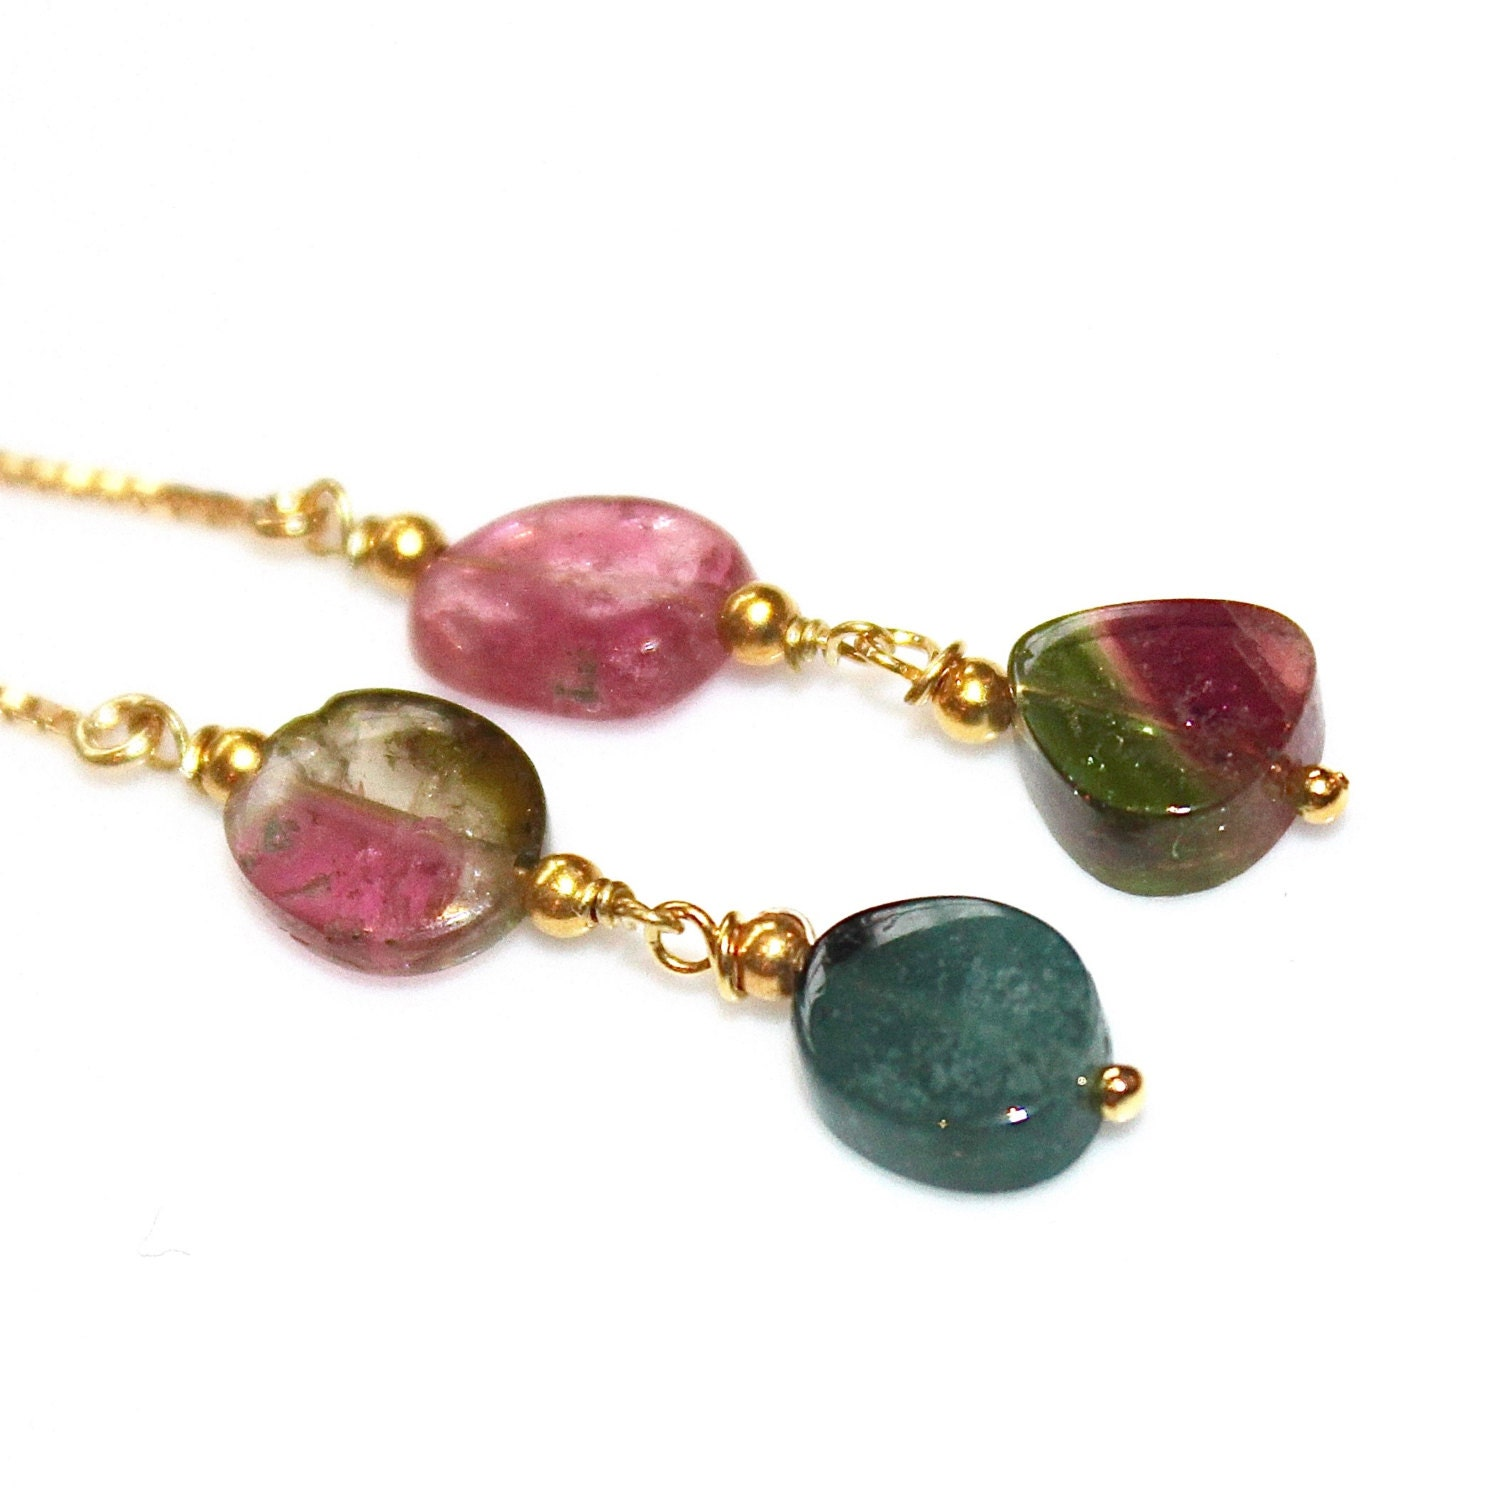 watermelon tourmaline earrings rainbow tourmaline by fizzcandy